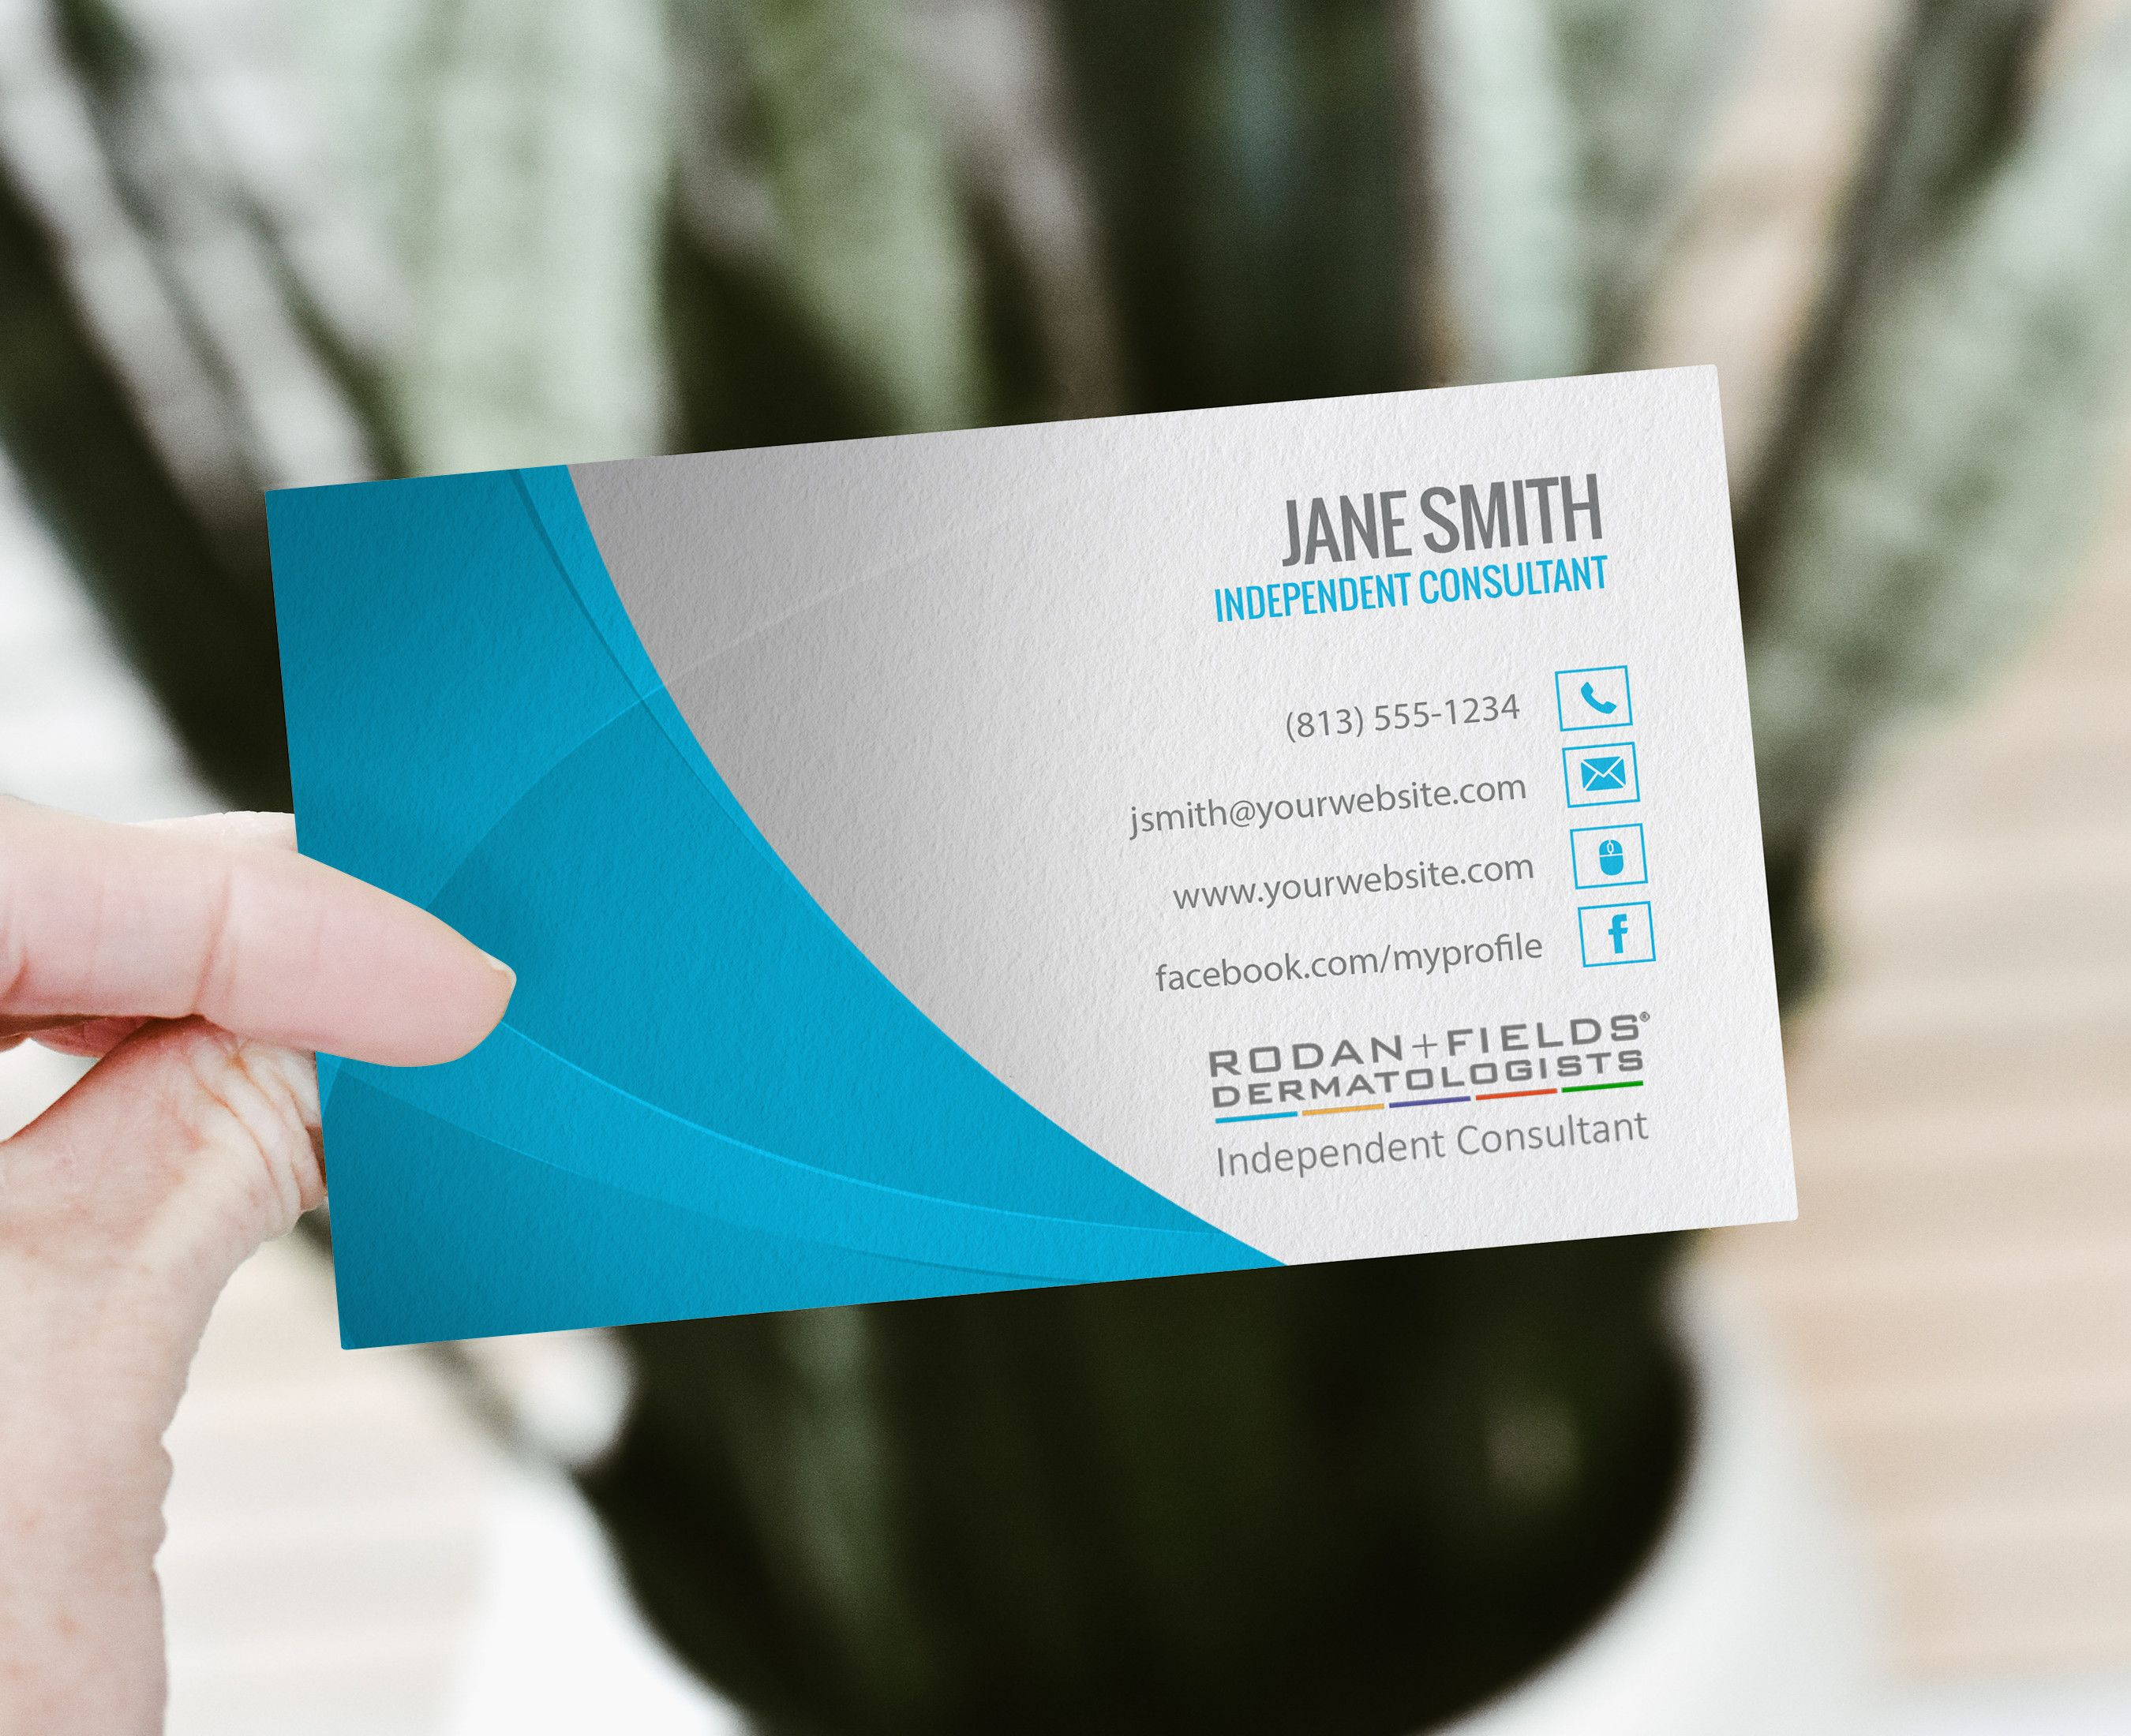 Rodan Fields Consultants Let S Find You A New Business Card Mlm Rodanandfields Print Rodan And Fields Business Rodan And Fields Printing Business Cards